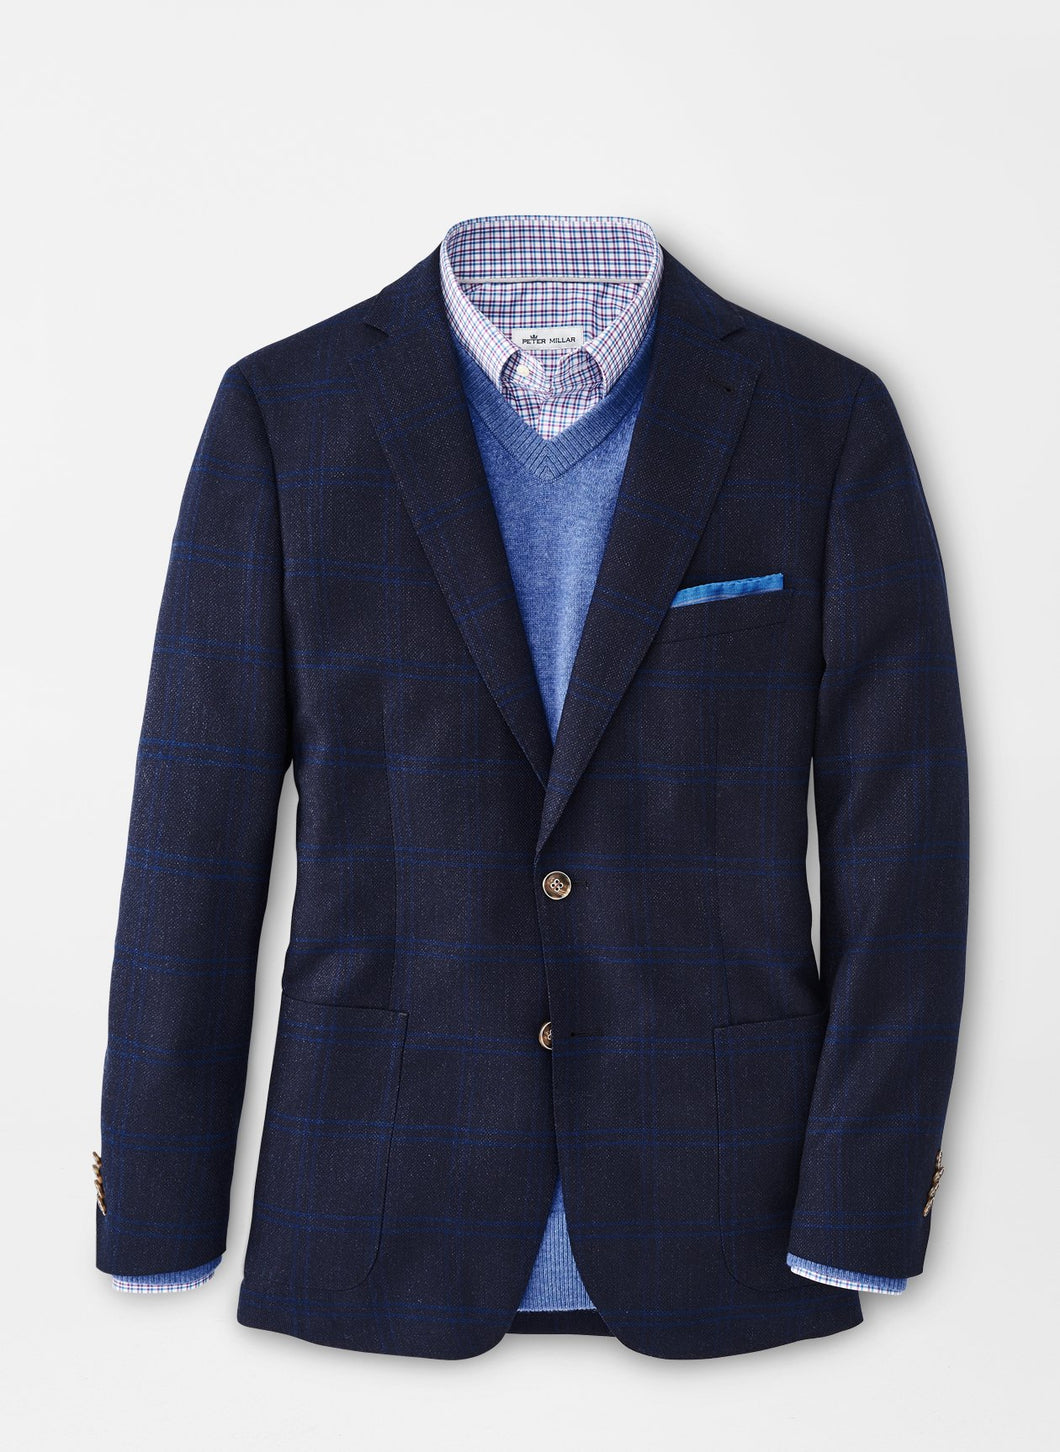 Peter Millar Fall Check Soft Jacket